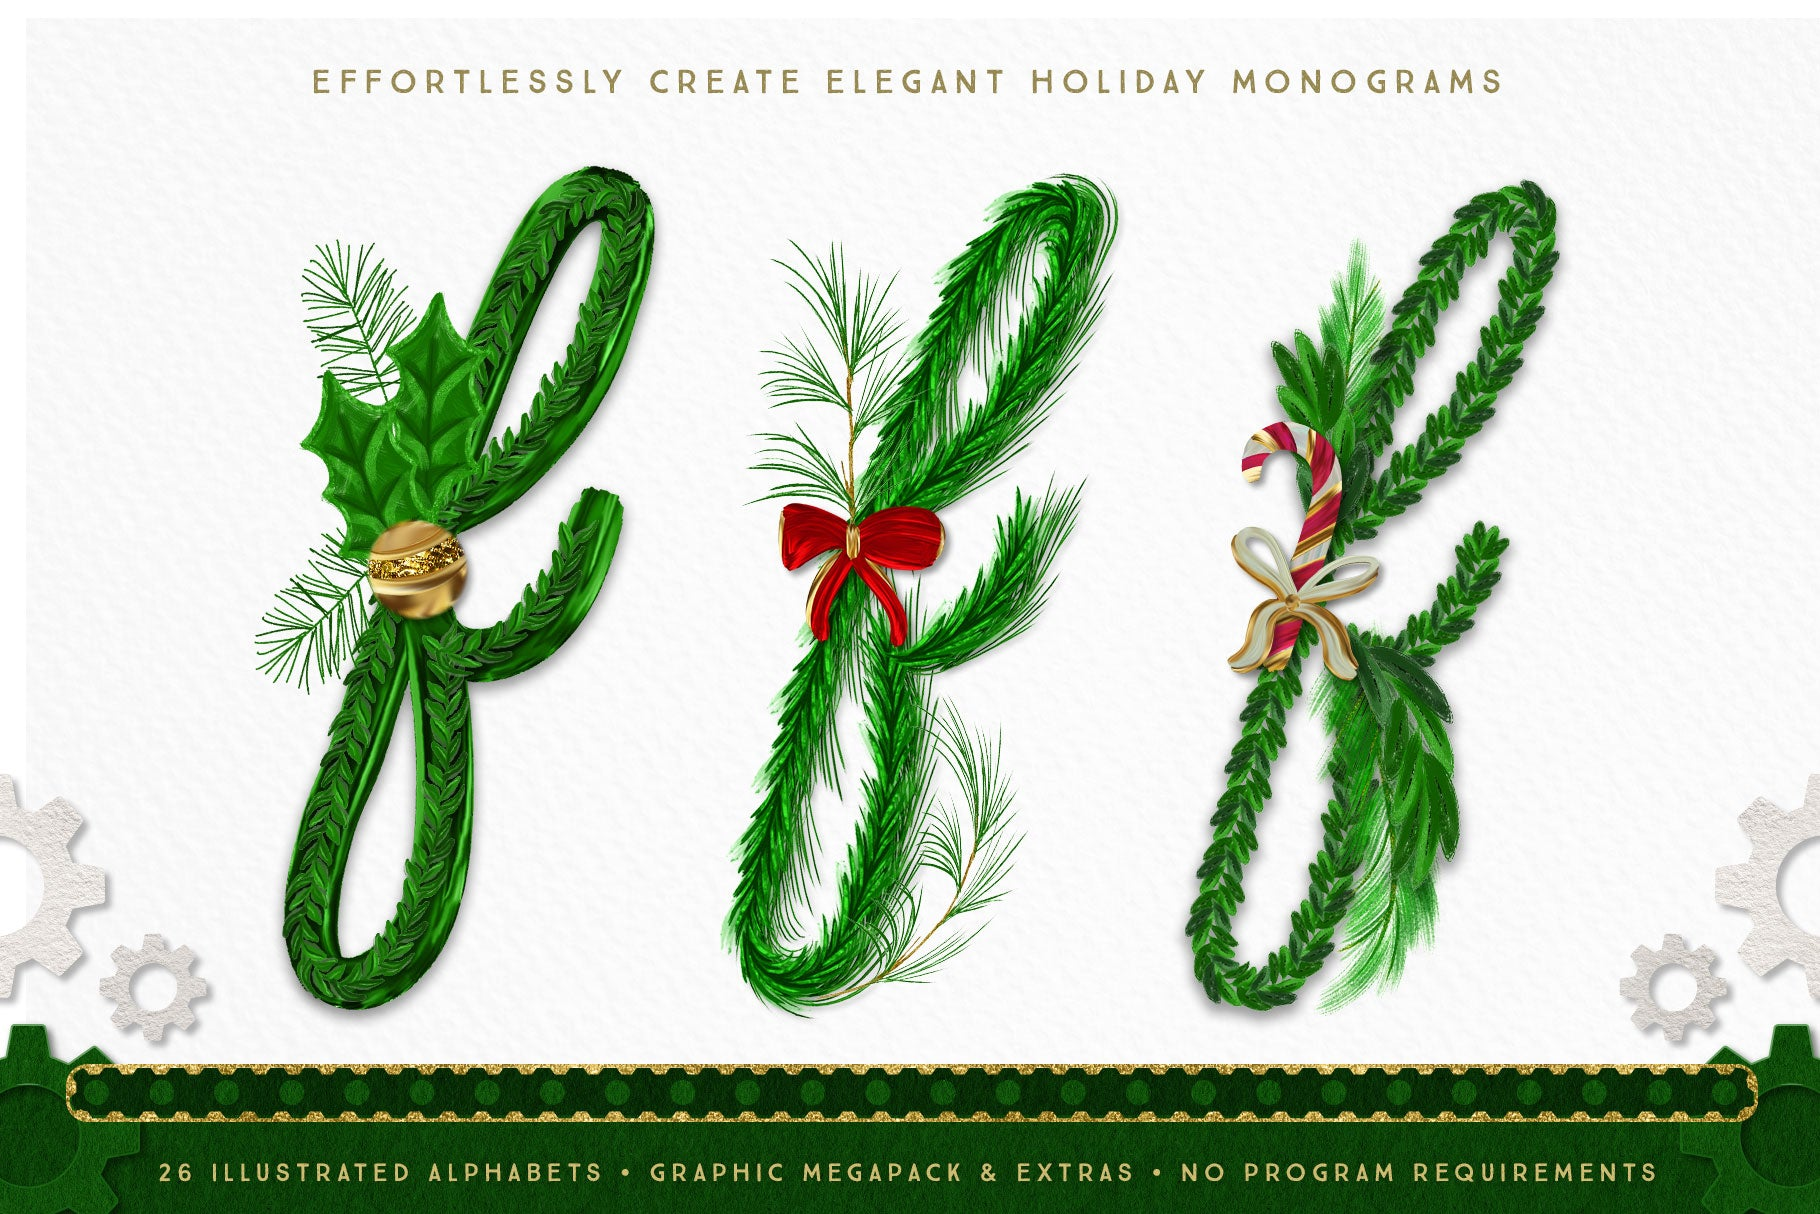 Luxe Christmas & Holiday Greenery Alphabets: holiday monogram design options